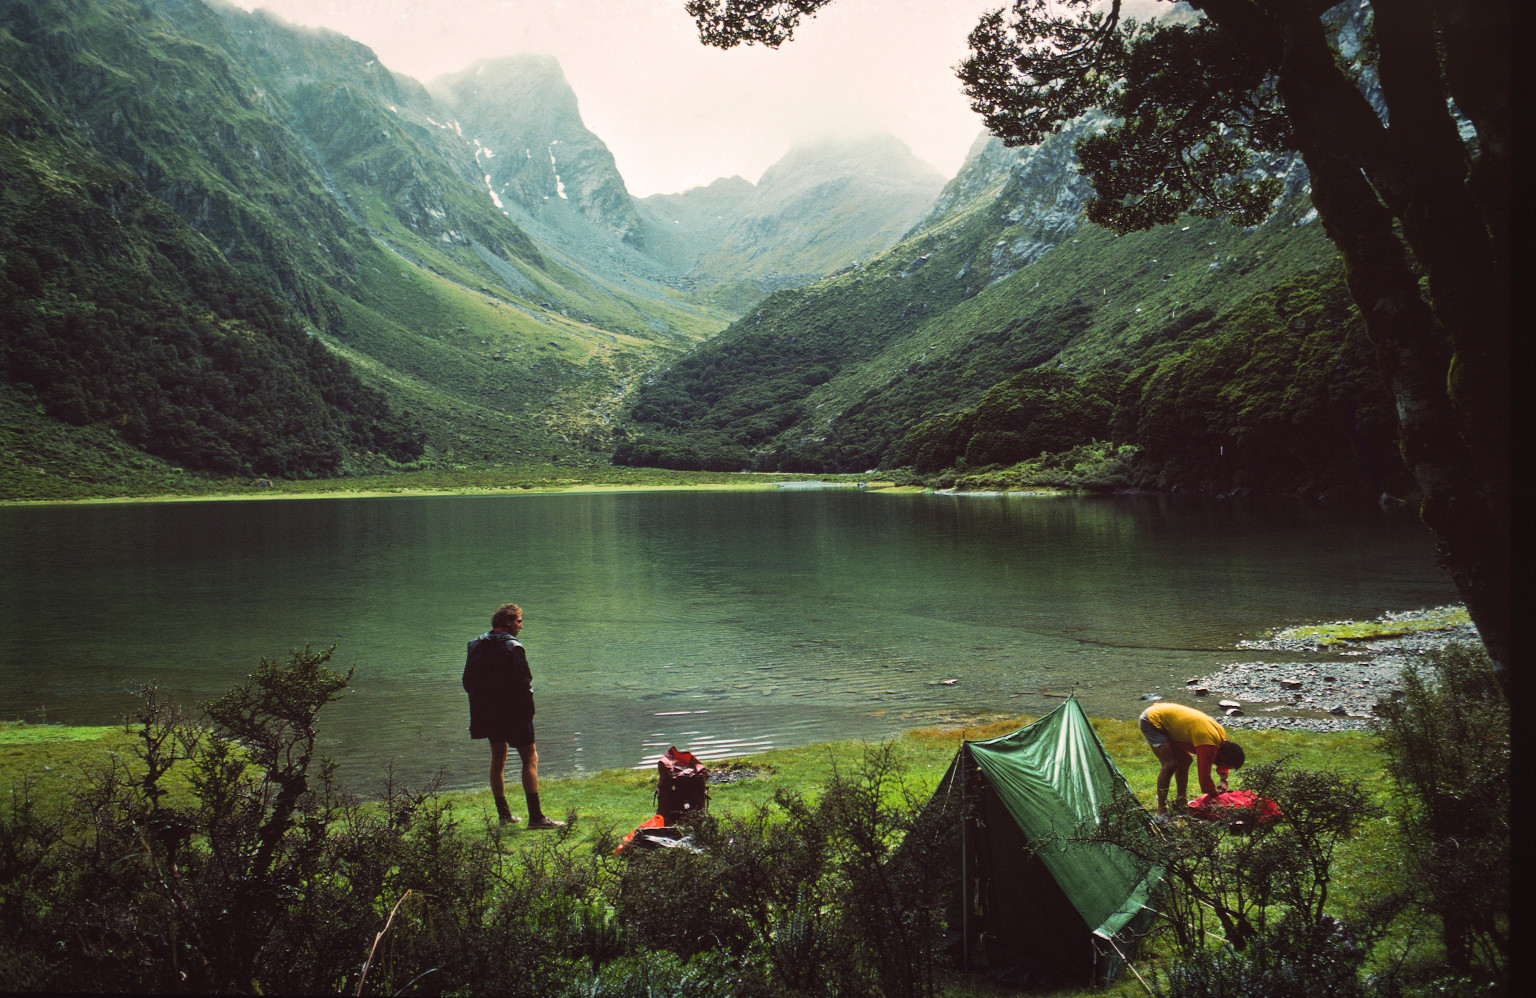 Nový Zéland Facebook: New Zealand's Environment-Friendly Image Marred By Dairy